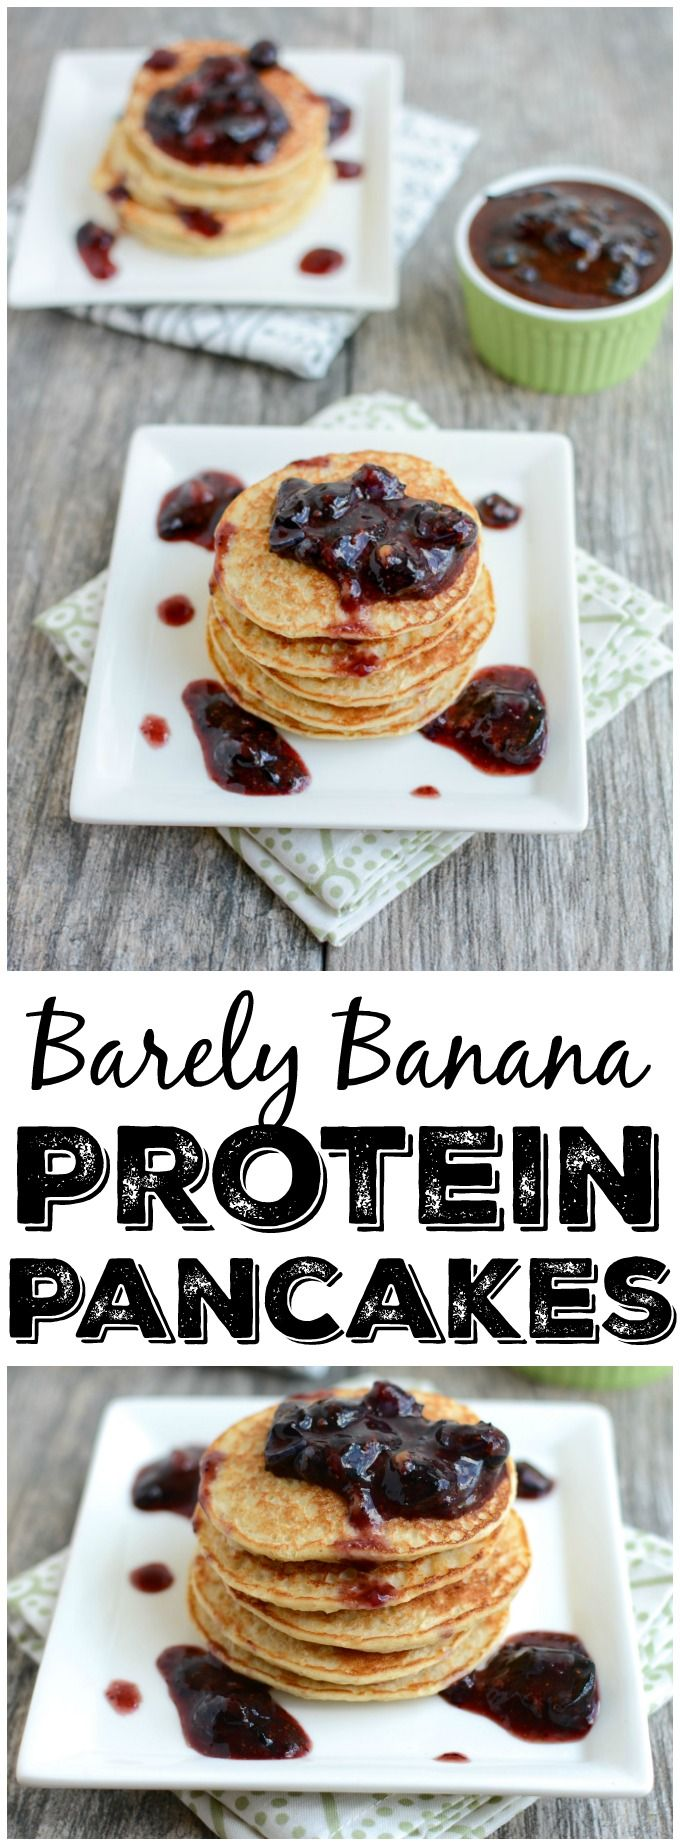 These Barely Banana Protein Pancakes are made with just 4 simple ingredients. They're a kid-friendly breakfast or snack recipe that can be made quickly in the blender!